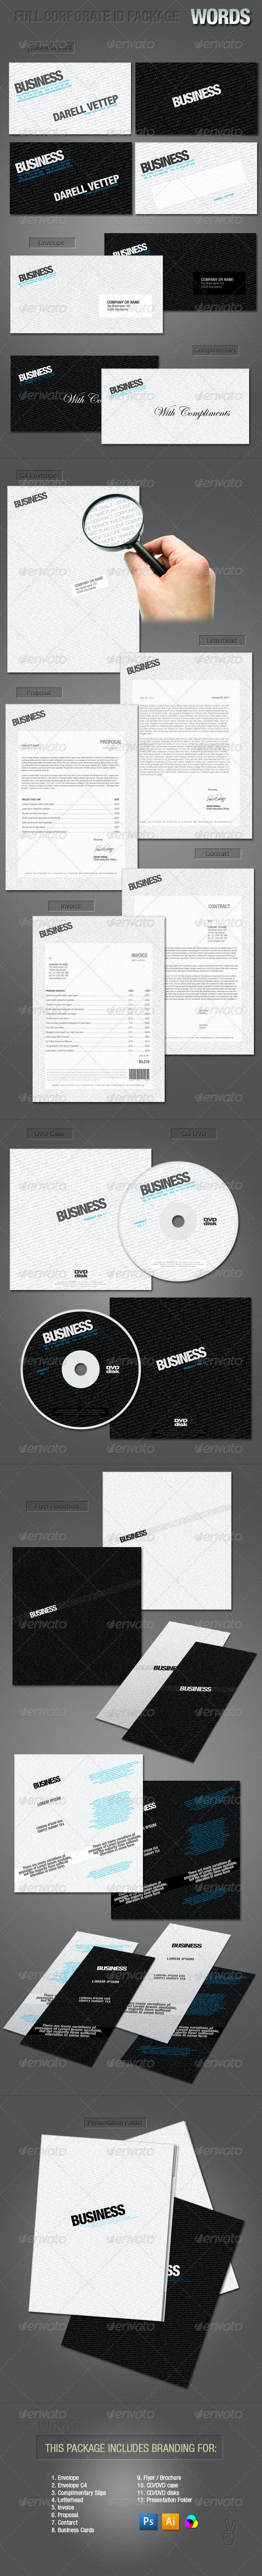 FULL CORPORATE ID PACKAGE - WORDS - Stationery Print Templates